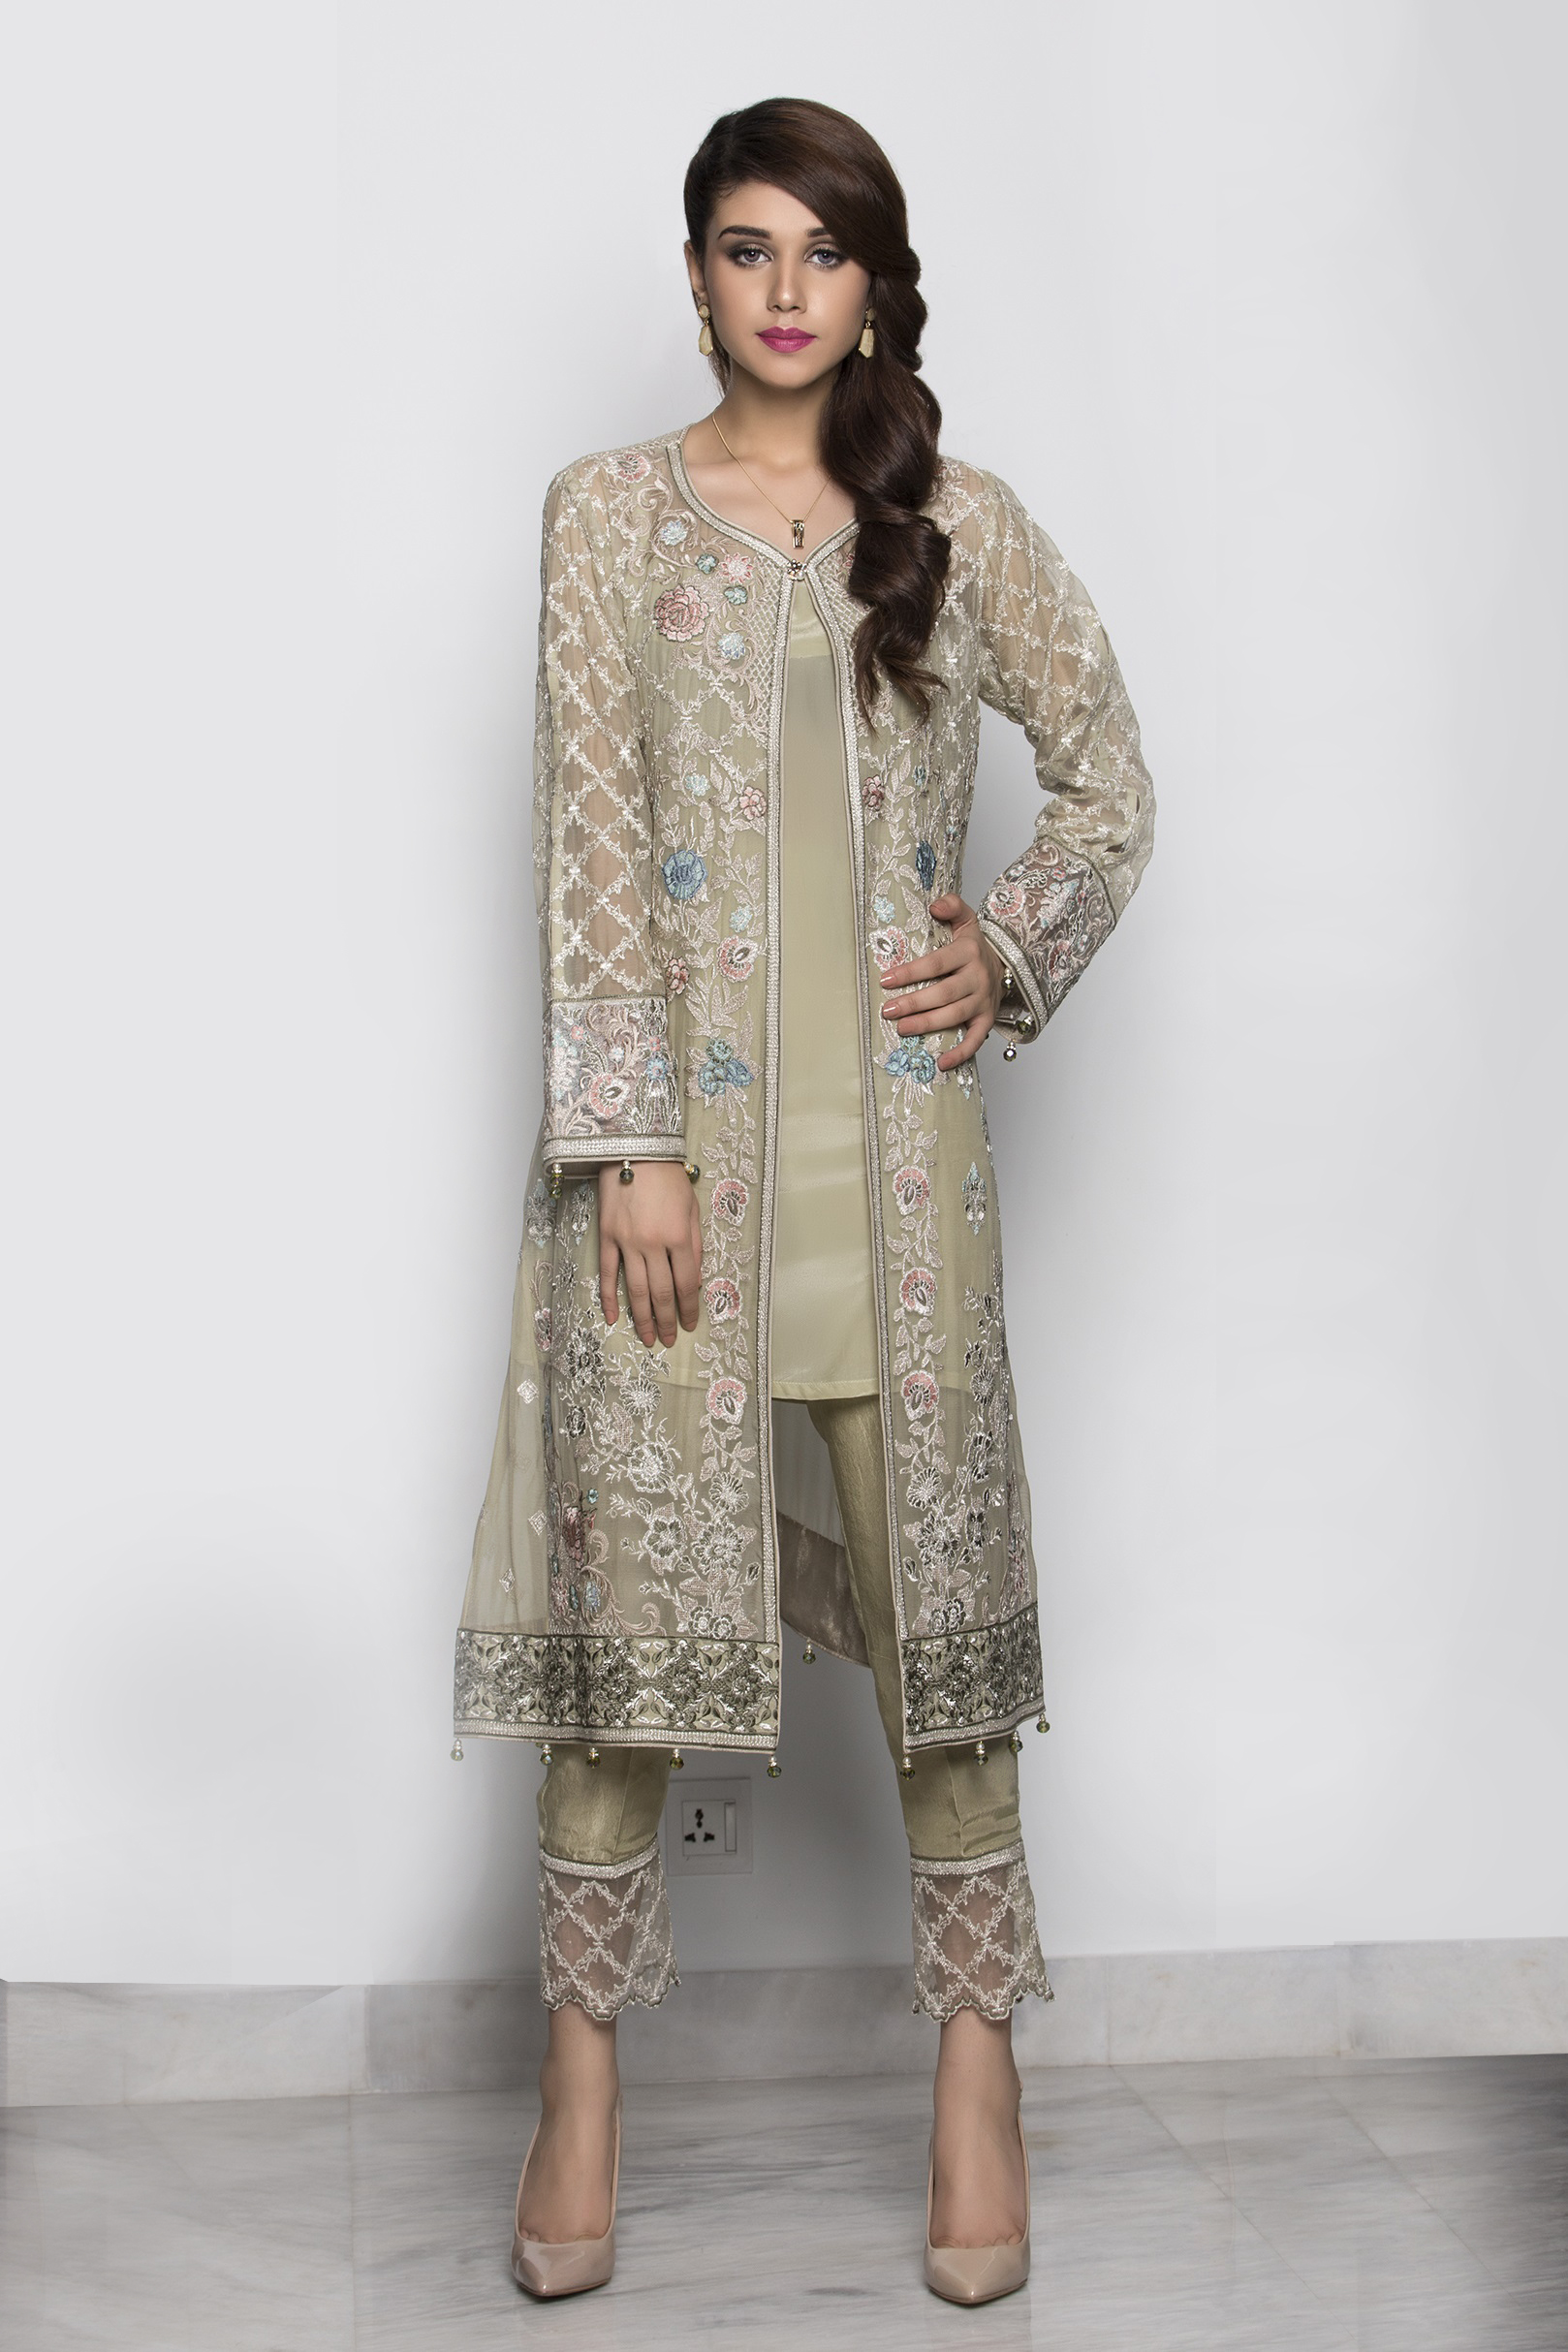 Indian Party Wear Salwar Suits Latest Collection We will discuss Indian Party Wear Salwar Kameez Collection for Indian, Pakistani and Asian getessay2016.tk the short length of the shirt is more in, with embroidered patches on the shirt corners, embroidered collars, .